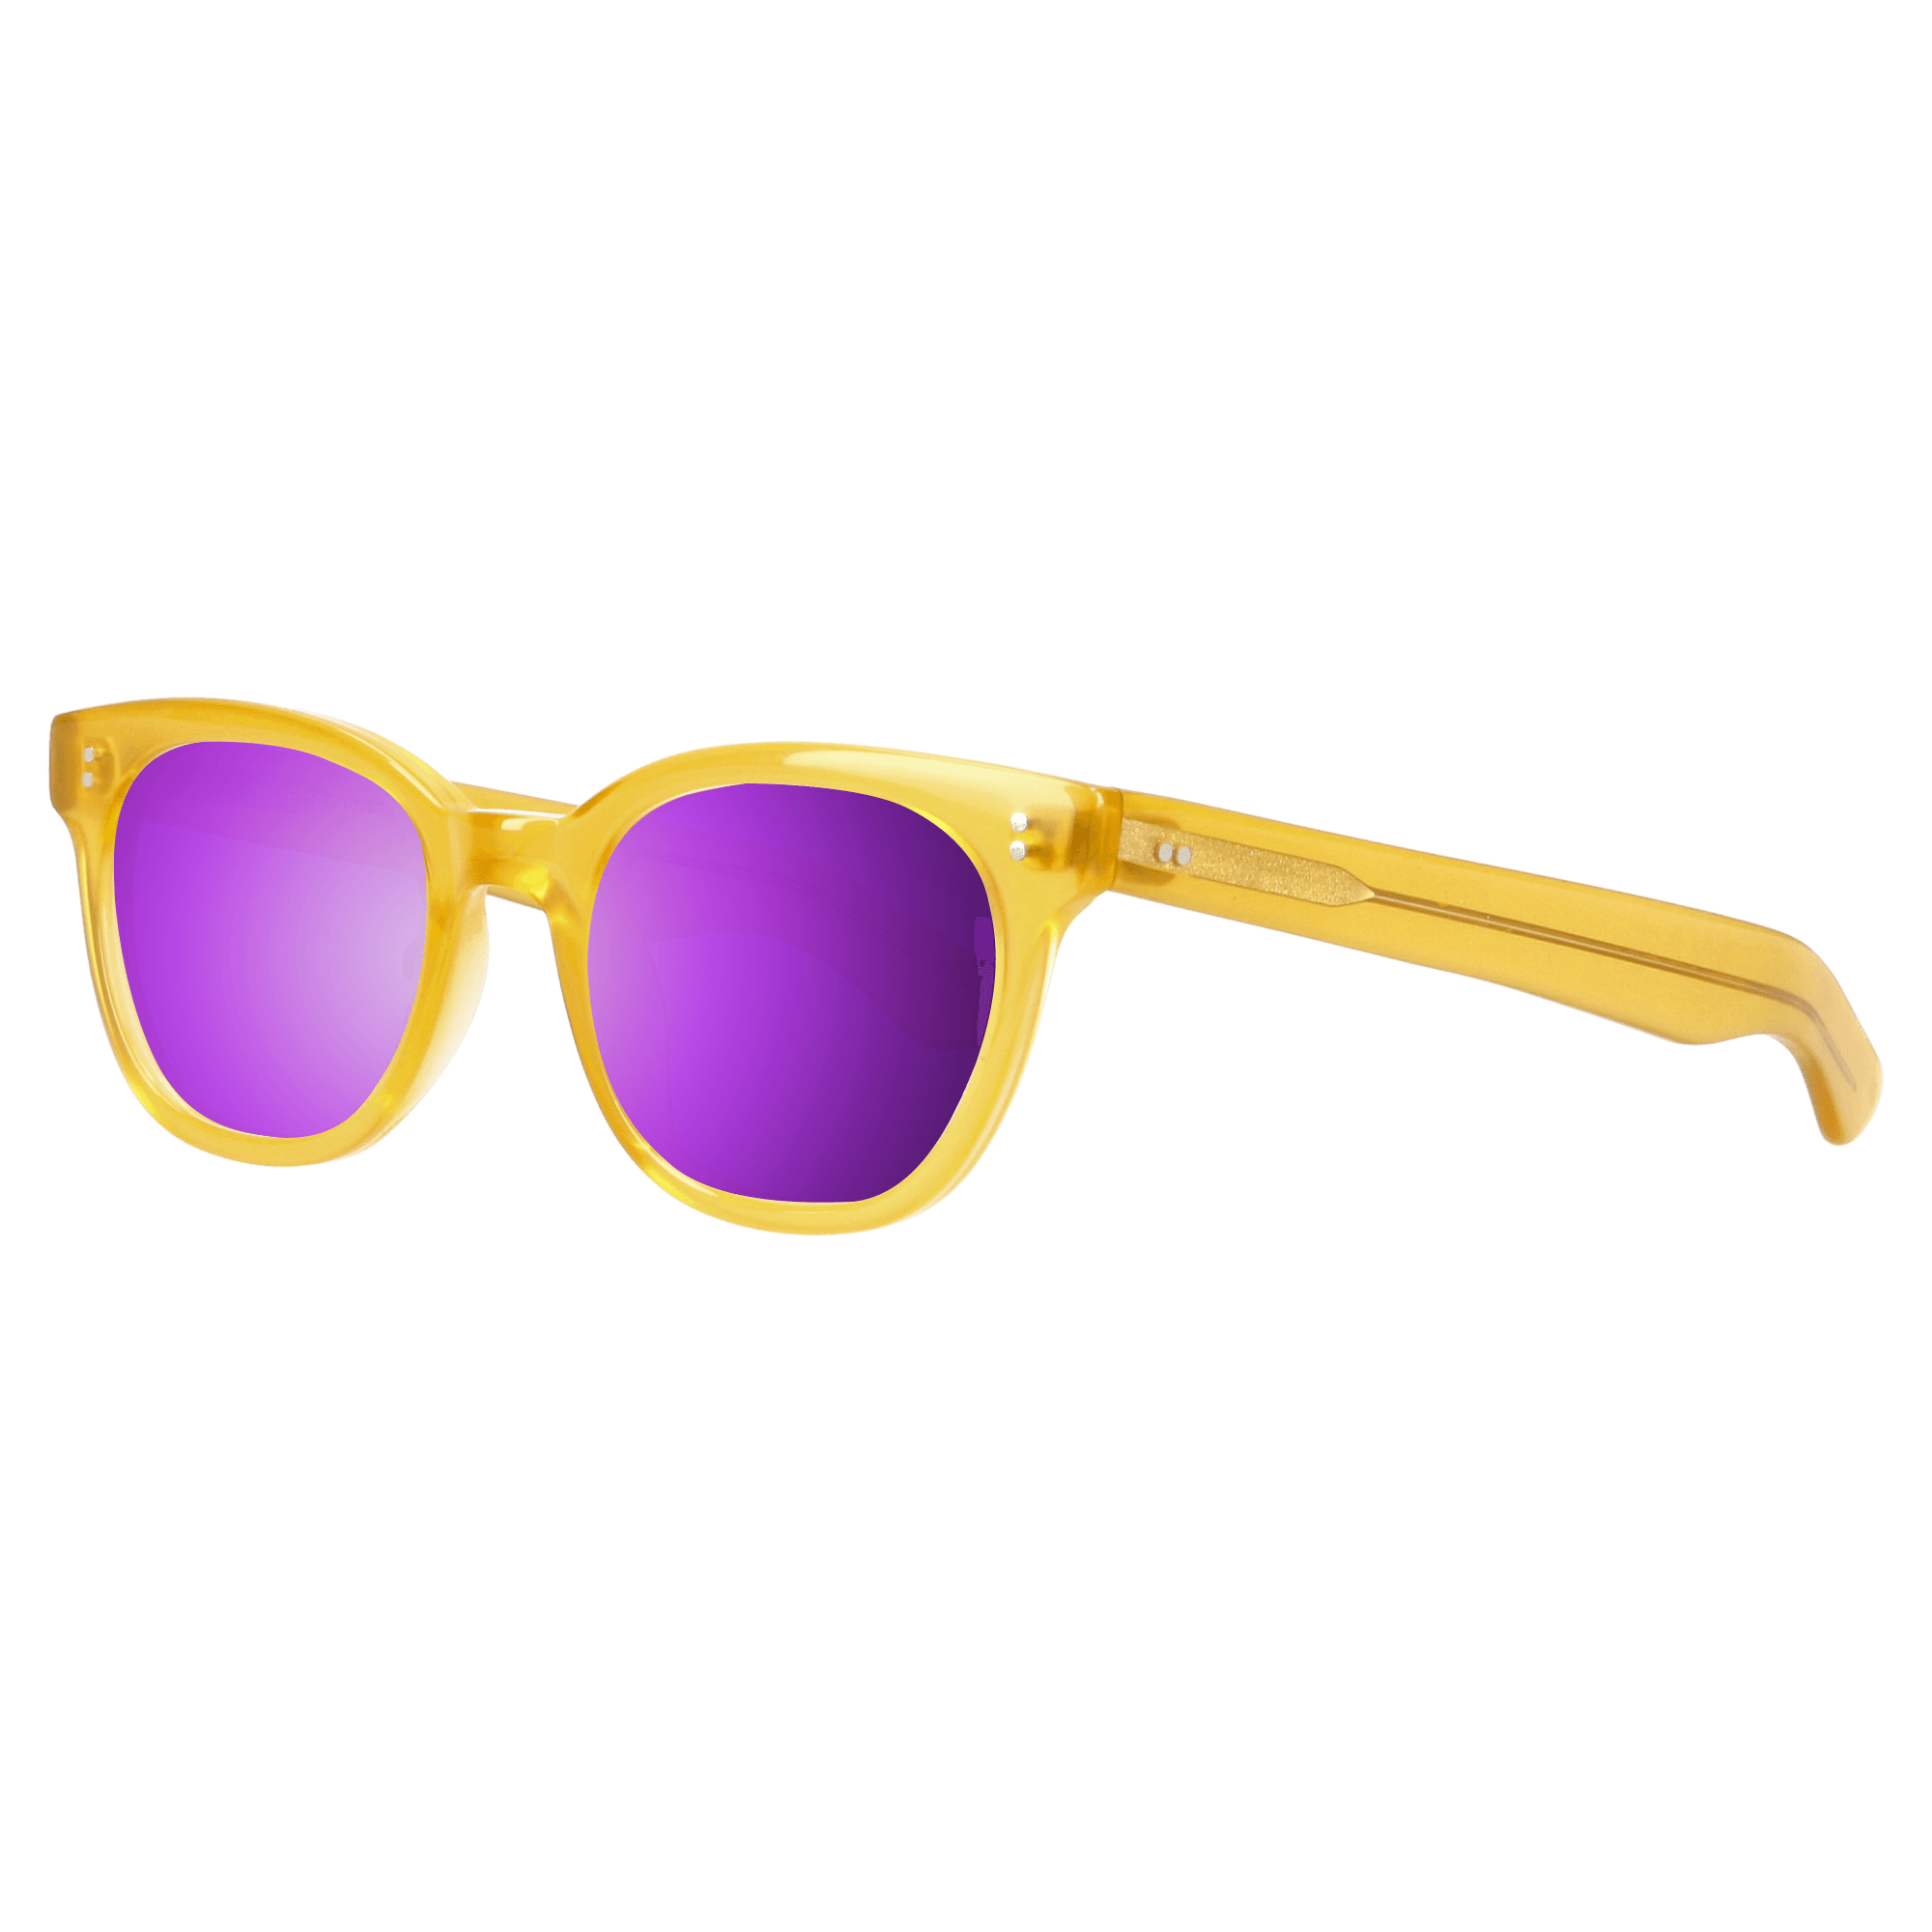 ACUBA - HONEY DAWN SUNGLASSES SAINT REETS